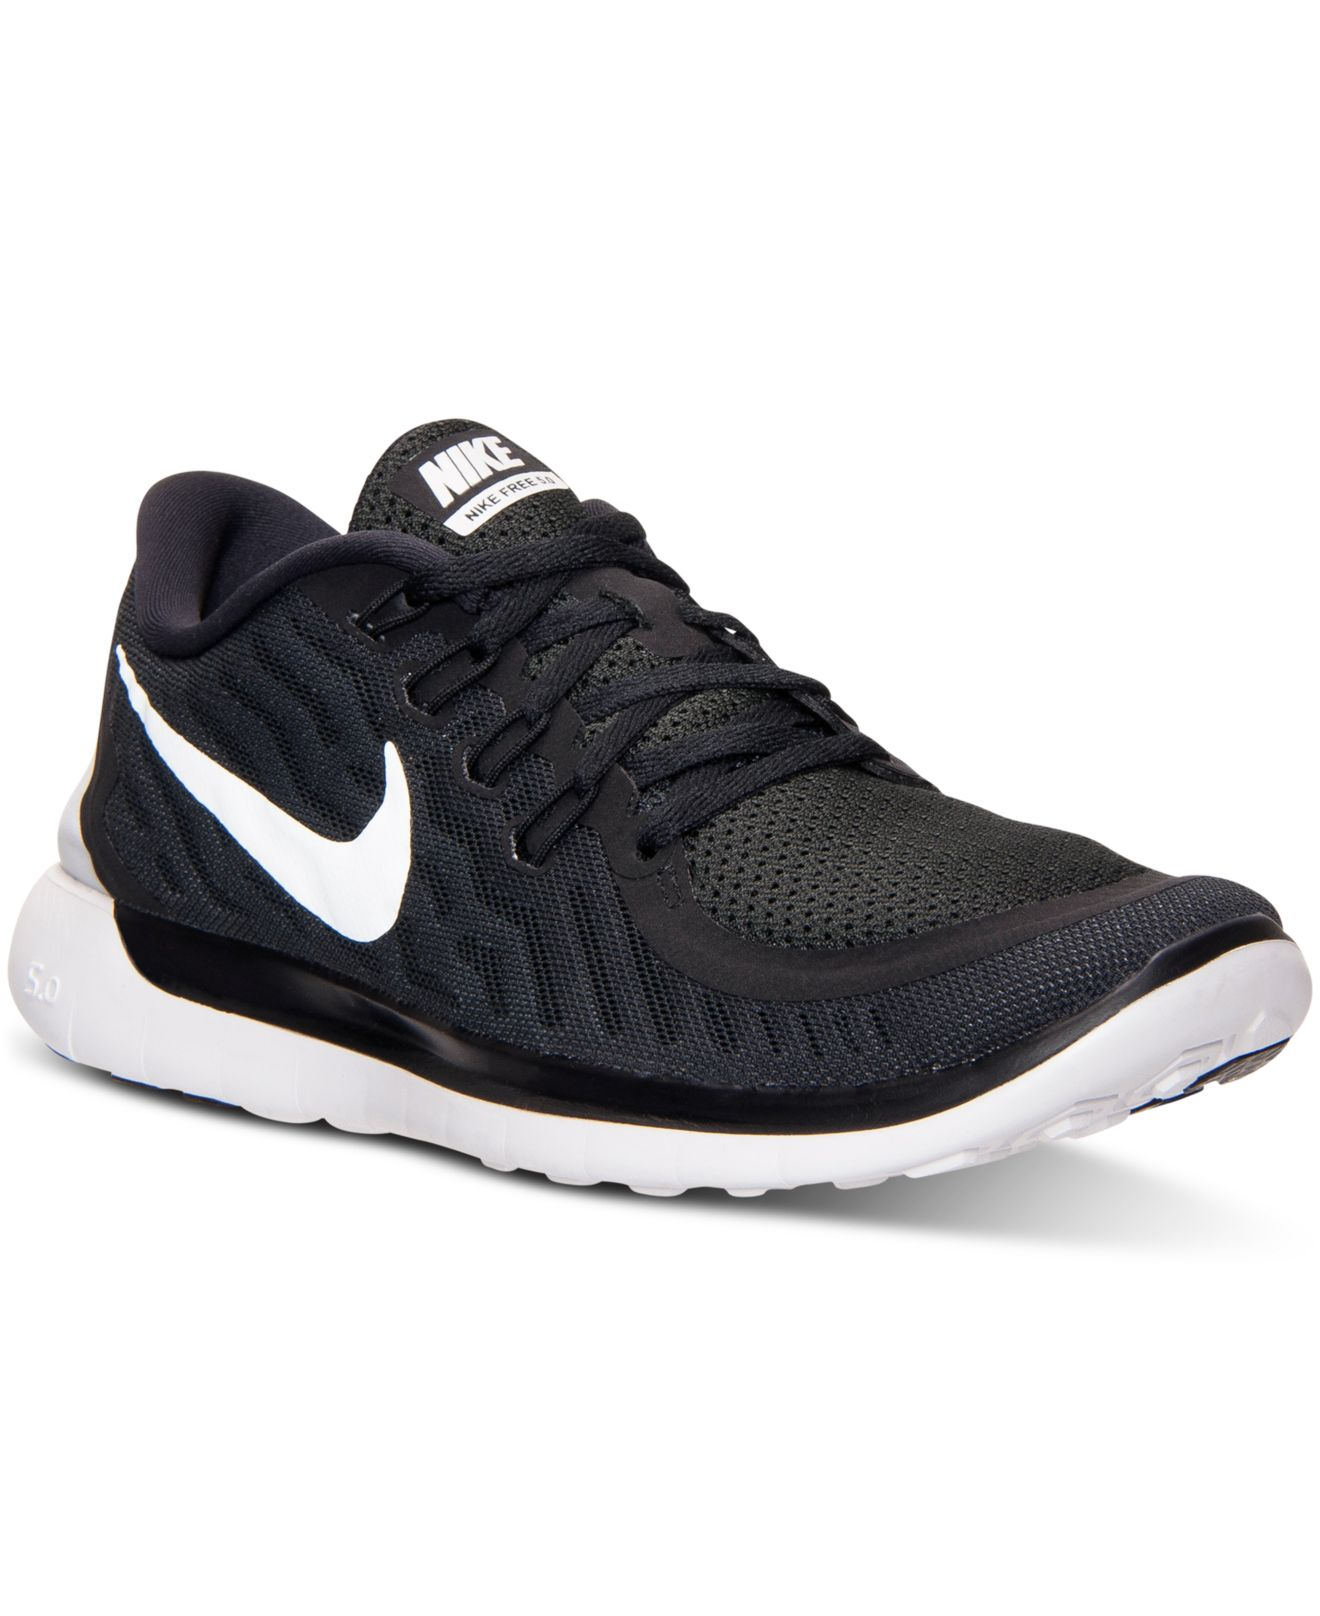 nike s free 5 0 running sneakers from finish line in